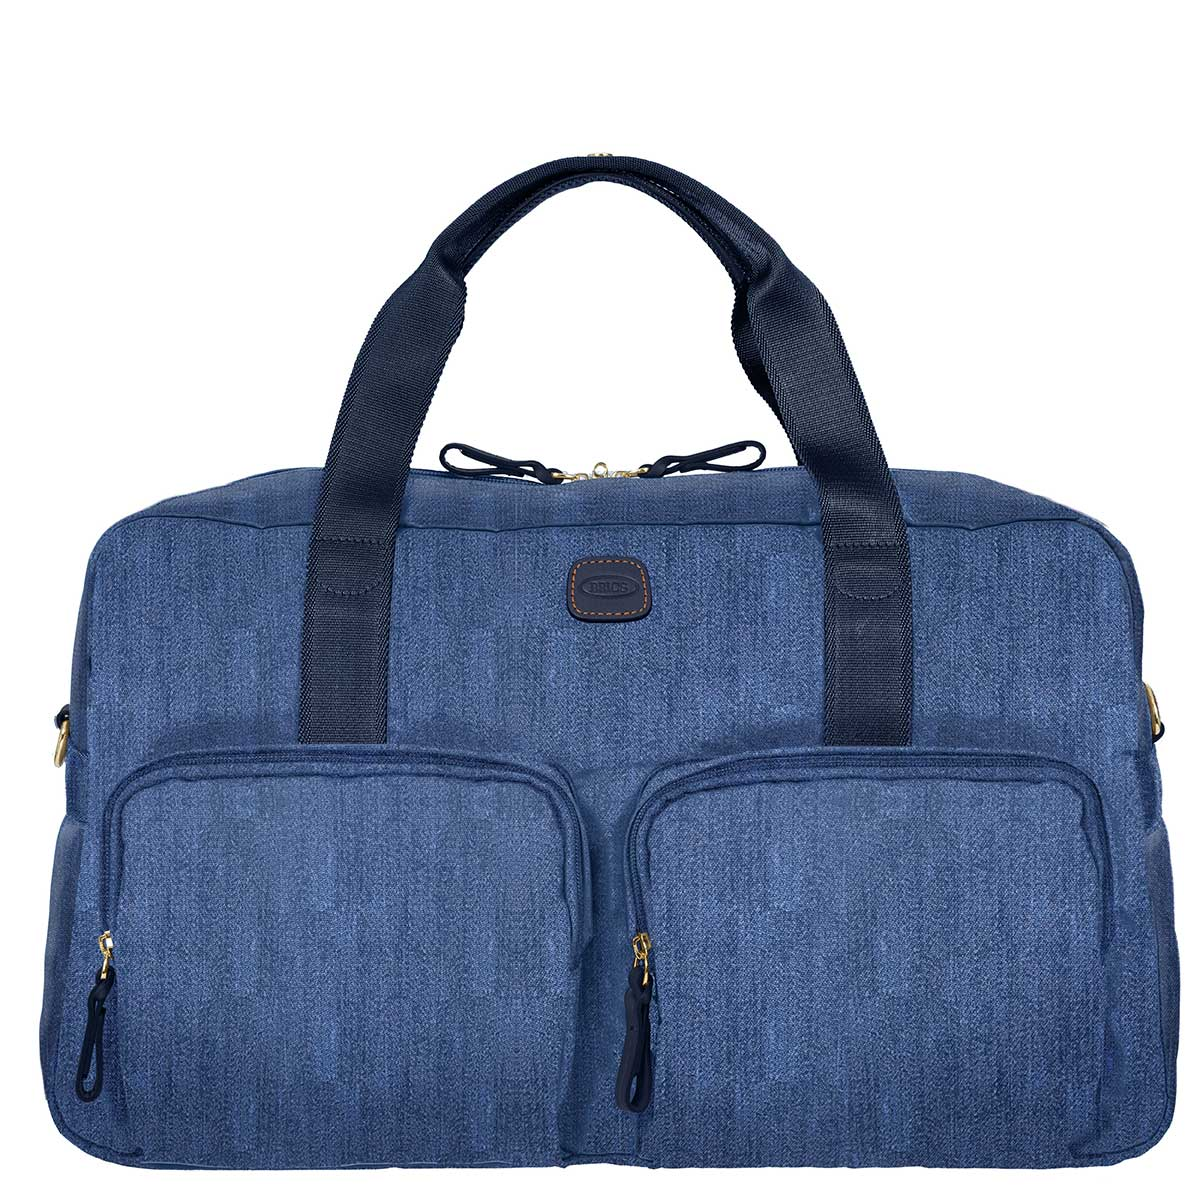 X-Bag Boarding Duffle Bag with Pockets - Jean Blue | Brics Travel Bag